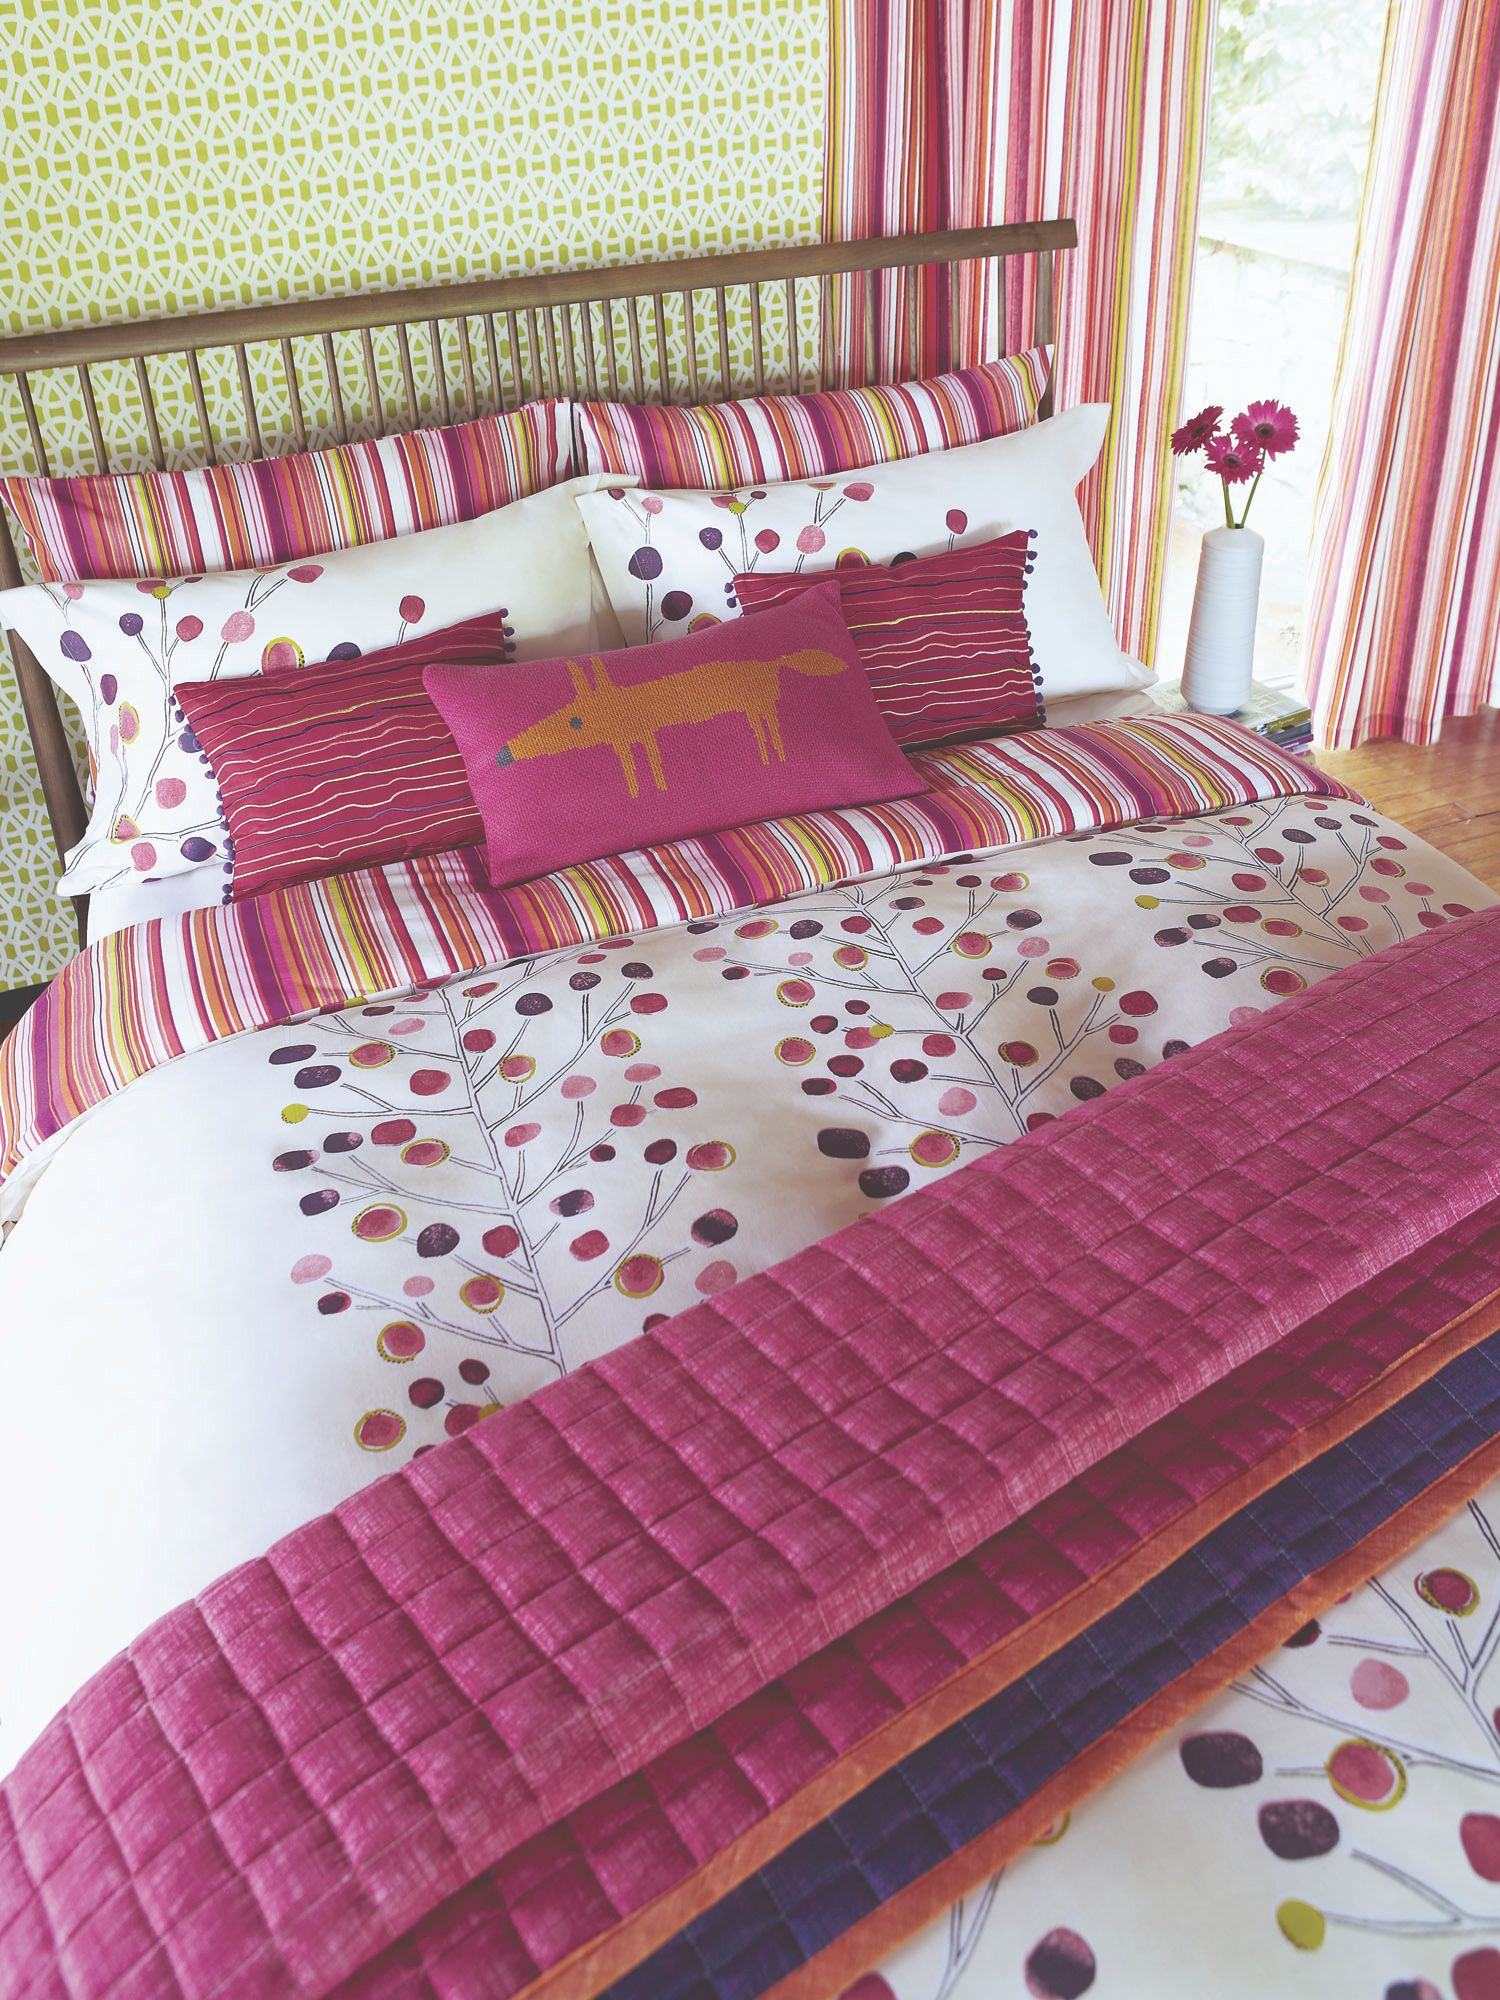 Berry tree bed linen in berry red